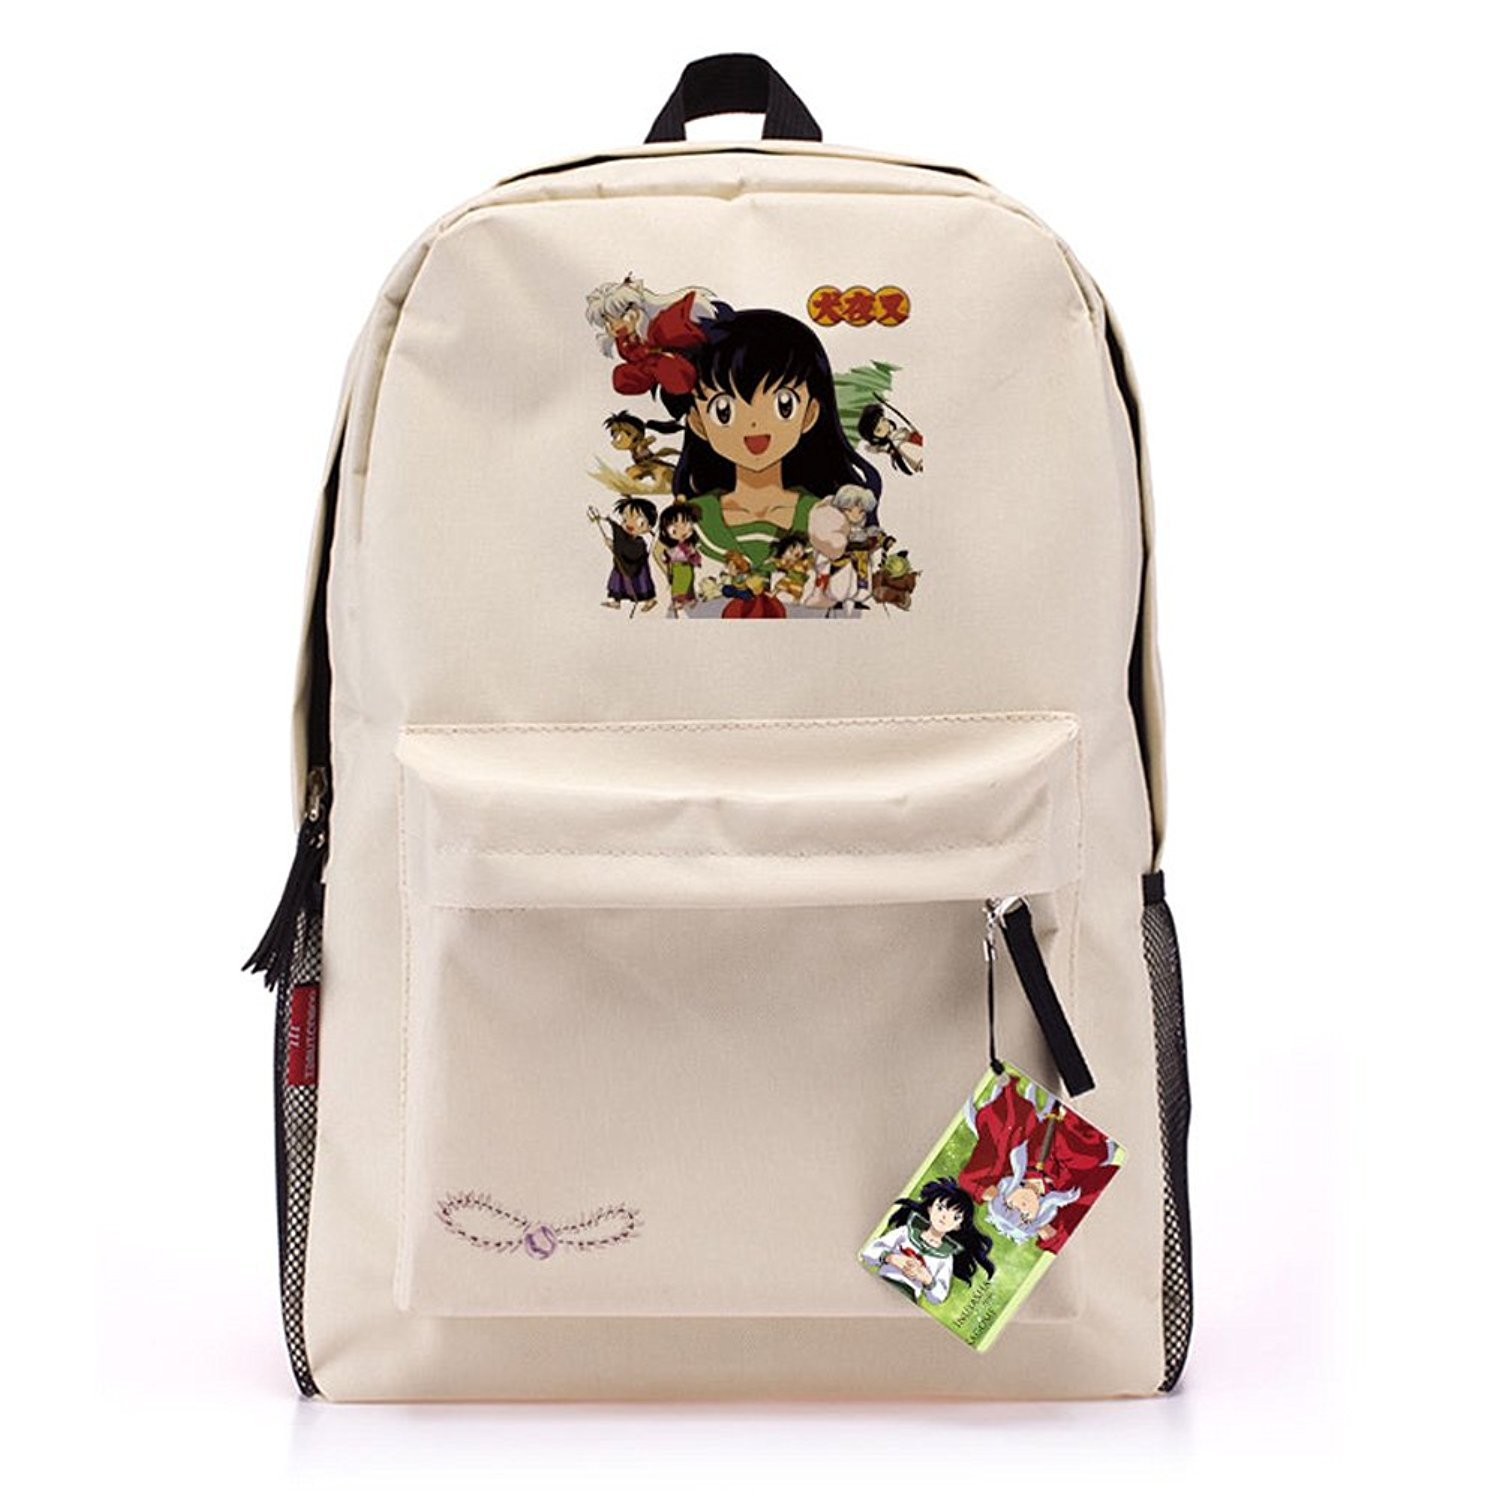 5dd5a568de Get Quotations · Boys Girls Anime Student Backpack Cartoon College  Schoolbag Leisure